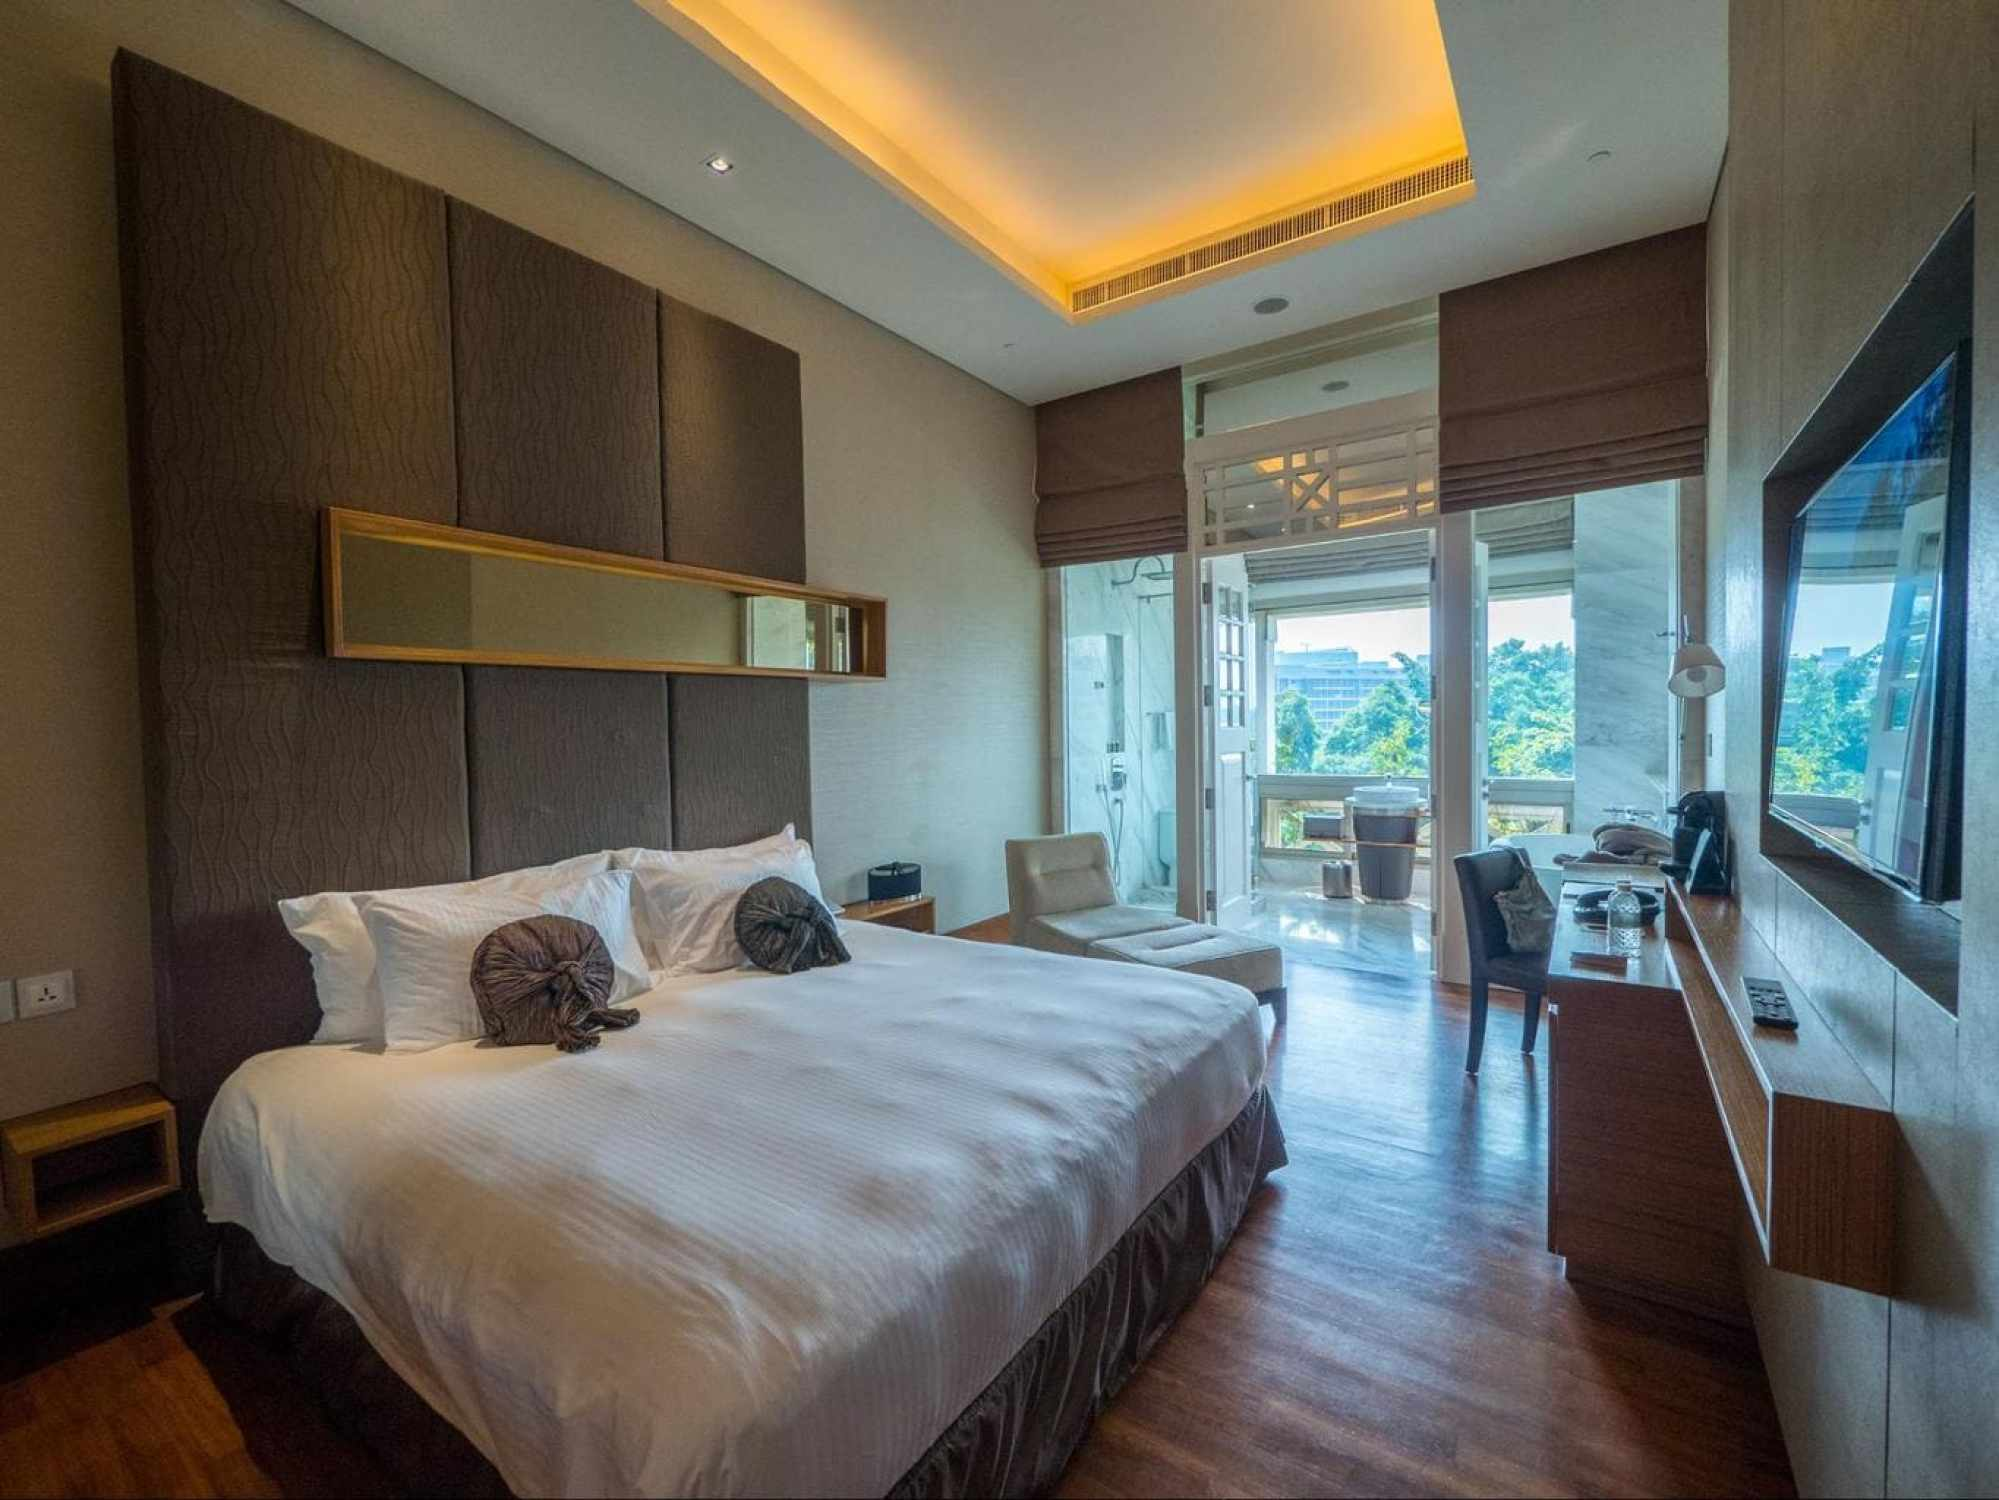 The deluxe room at Hotel Fort Canning in full